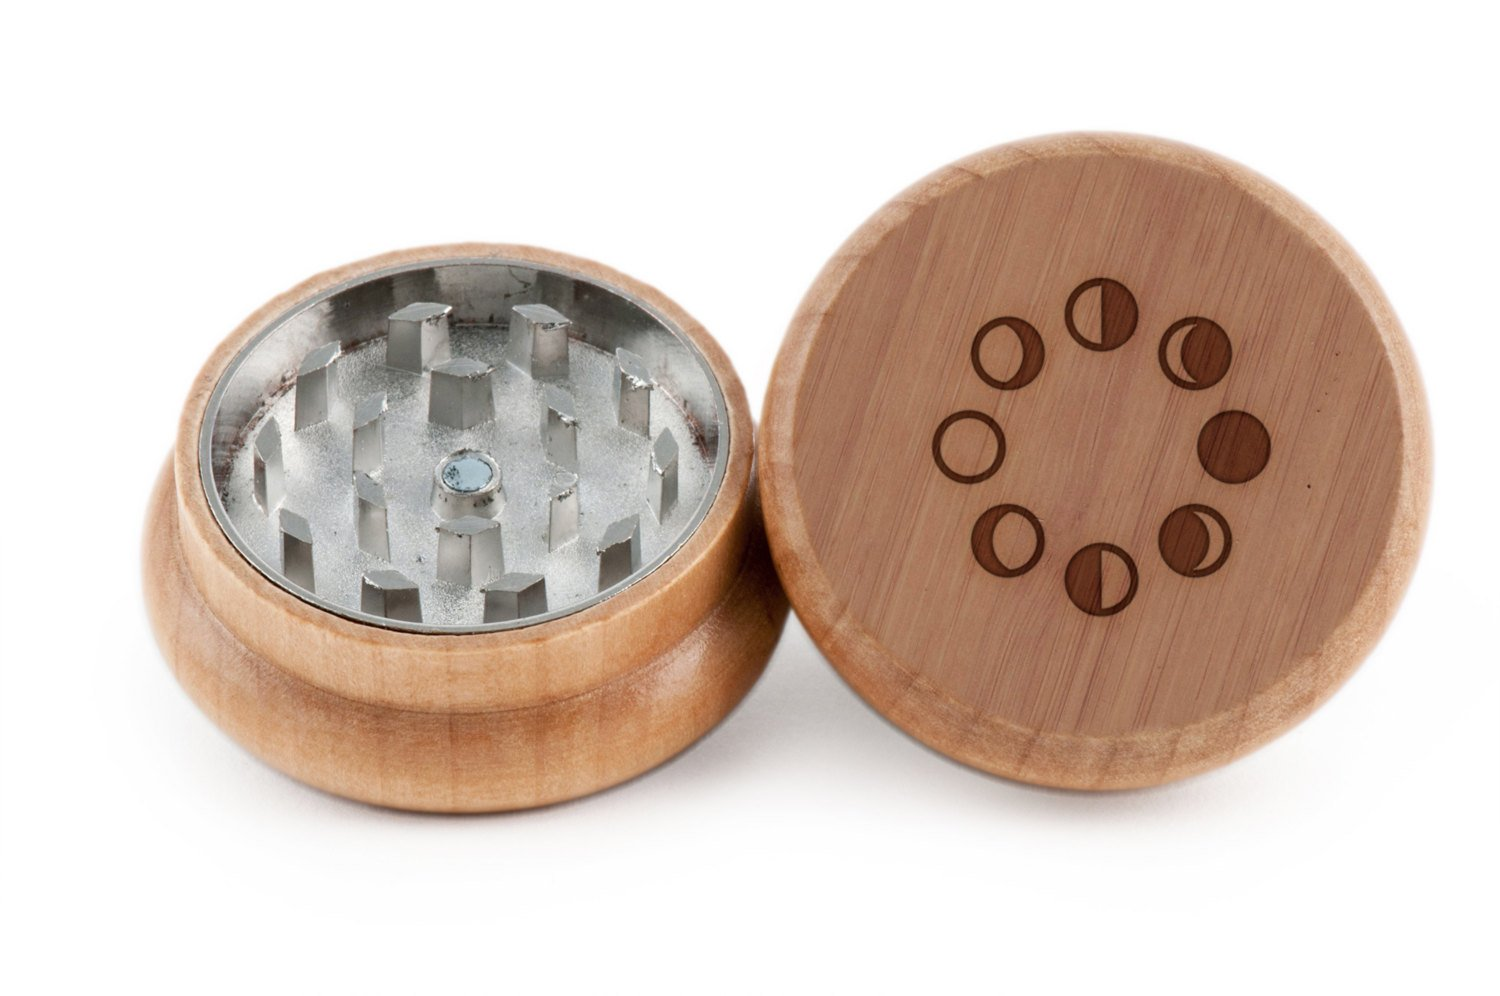 GRINDCANDY Spice And Herb Grinder - Laser Etched Lunar Phases Design - Manual Oak Pepper Grinder